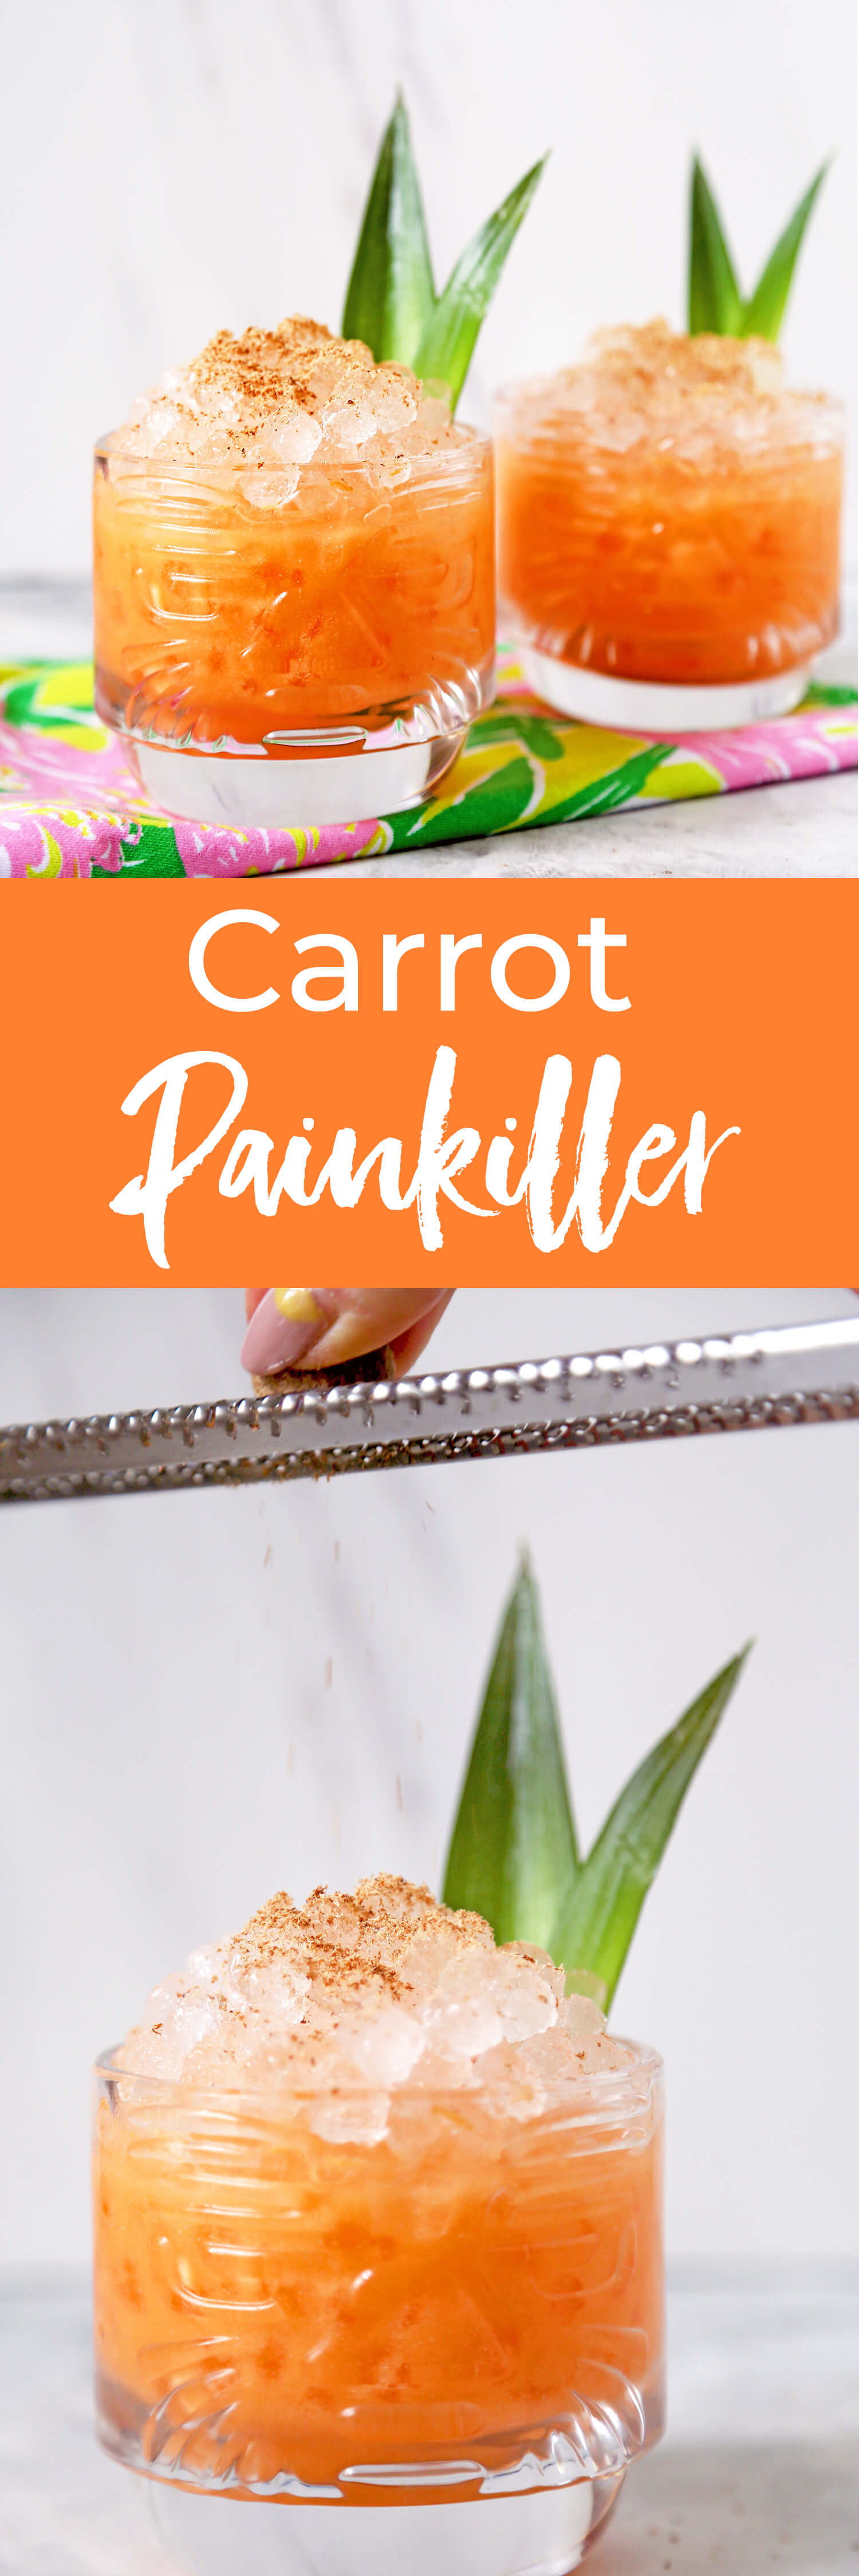 An Easter Treat - The Carrot Painkiller